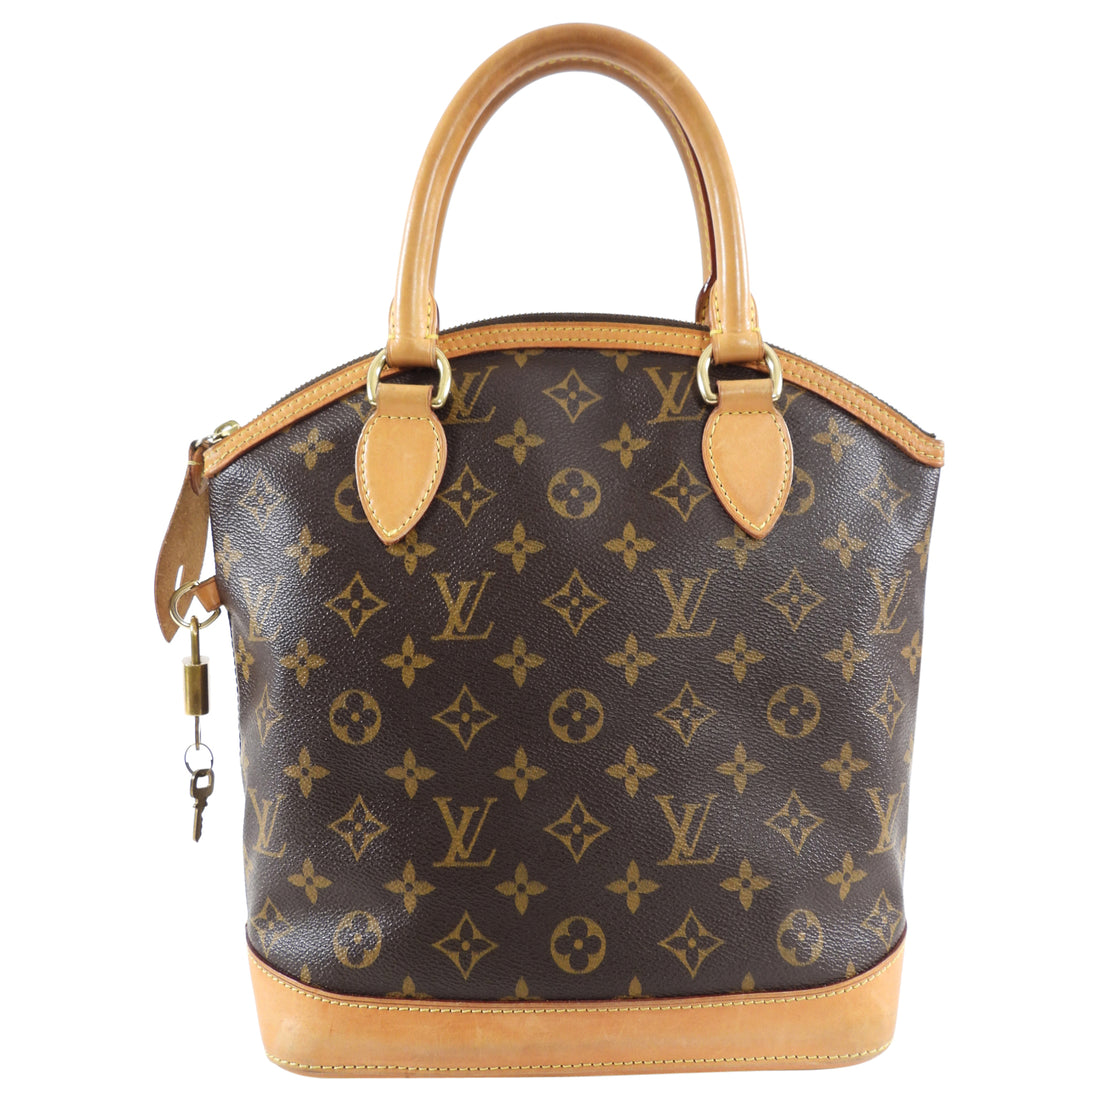 Louis Vuitton Monogram Lockit Vertical PM Handbag